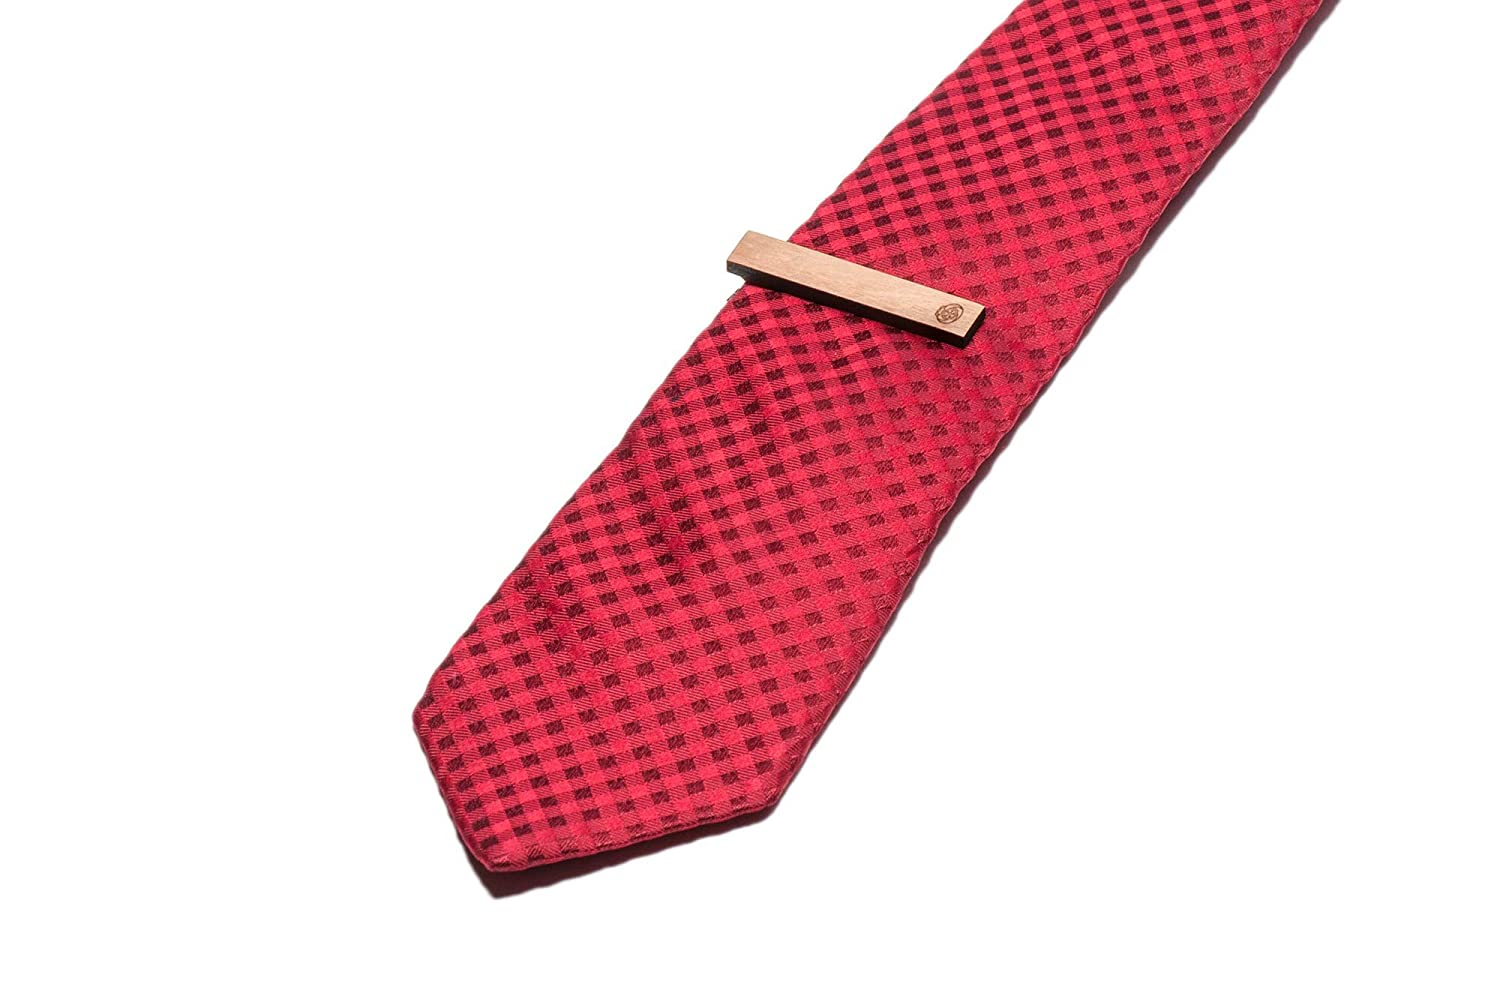 Wooden Accessories Company Wooden Tie Clips with Laser Engraved Ventilated Brake Design Cherry Wood Tie Bar Engraved in The USA